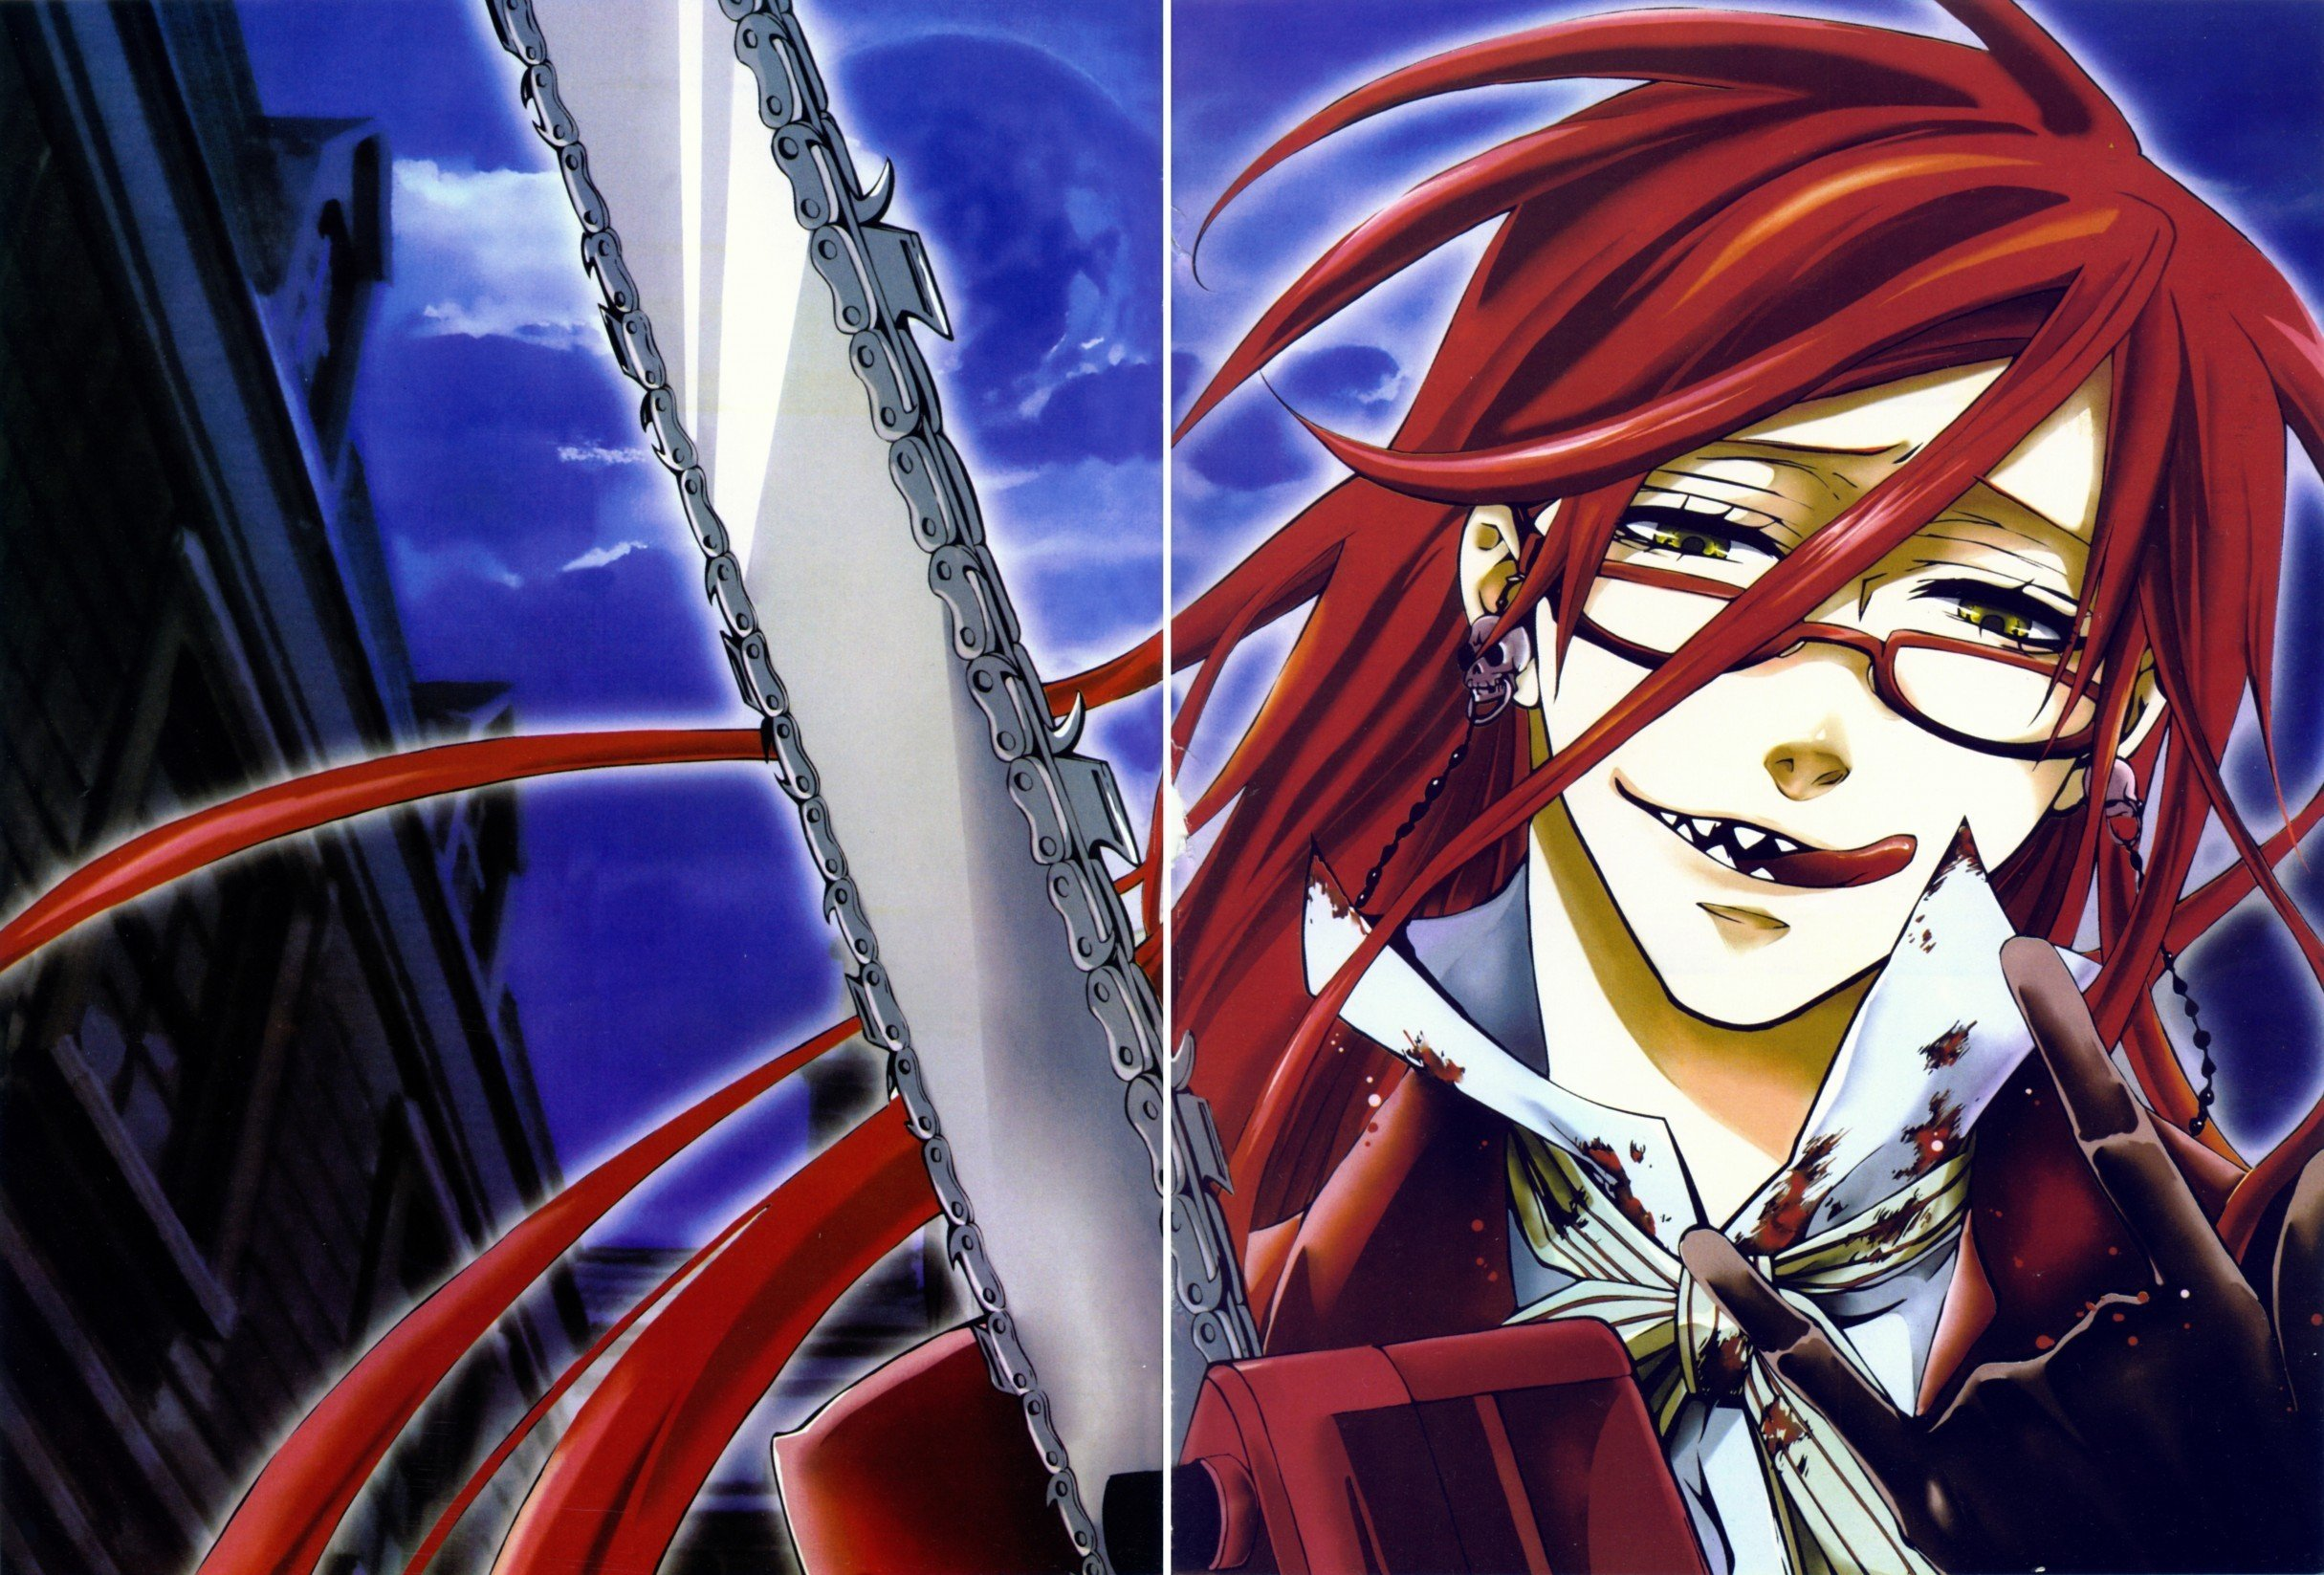 Grell Sutcliffe images Grell HD wallpaper and background 2430x1647